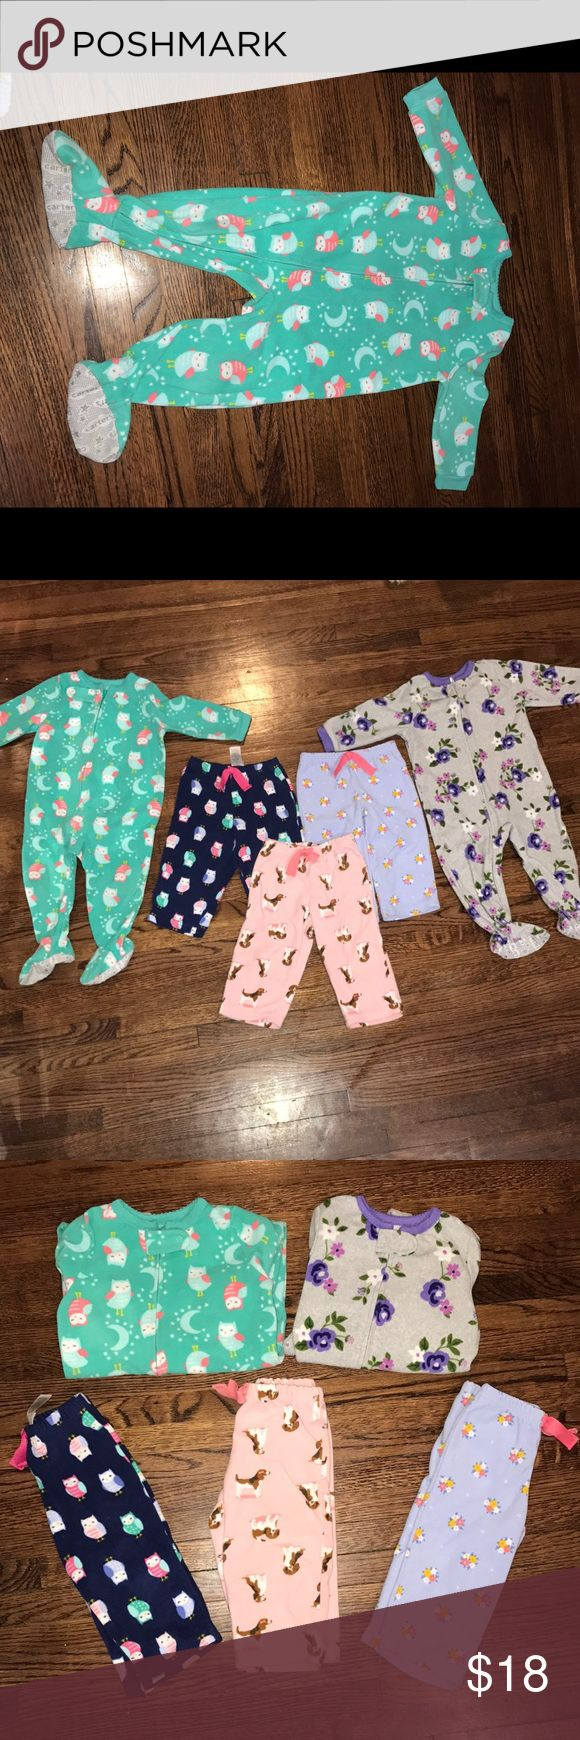 Carters 12 month fleece pajamas bundle 2 fleece feetsie pajamas  3 fleece pajama pants all carters brand all 12 months.  No stains, holes - normal wash wear. Still in very good condition Carter's Pajamas Pajama Bottoms